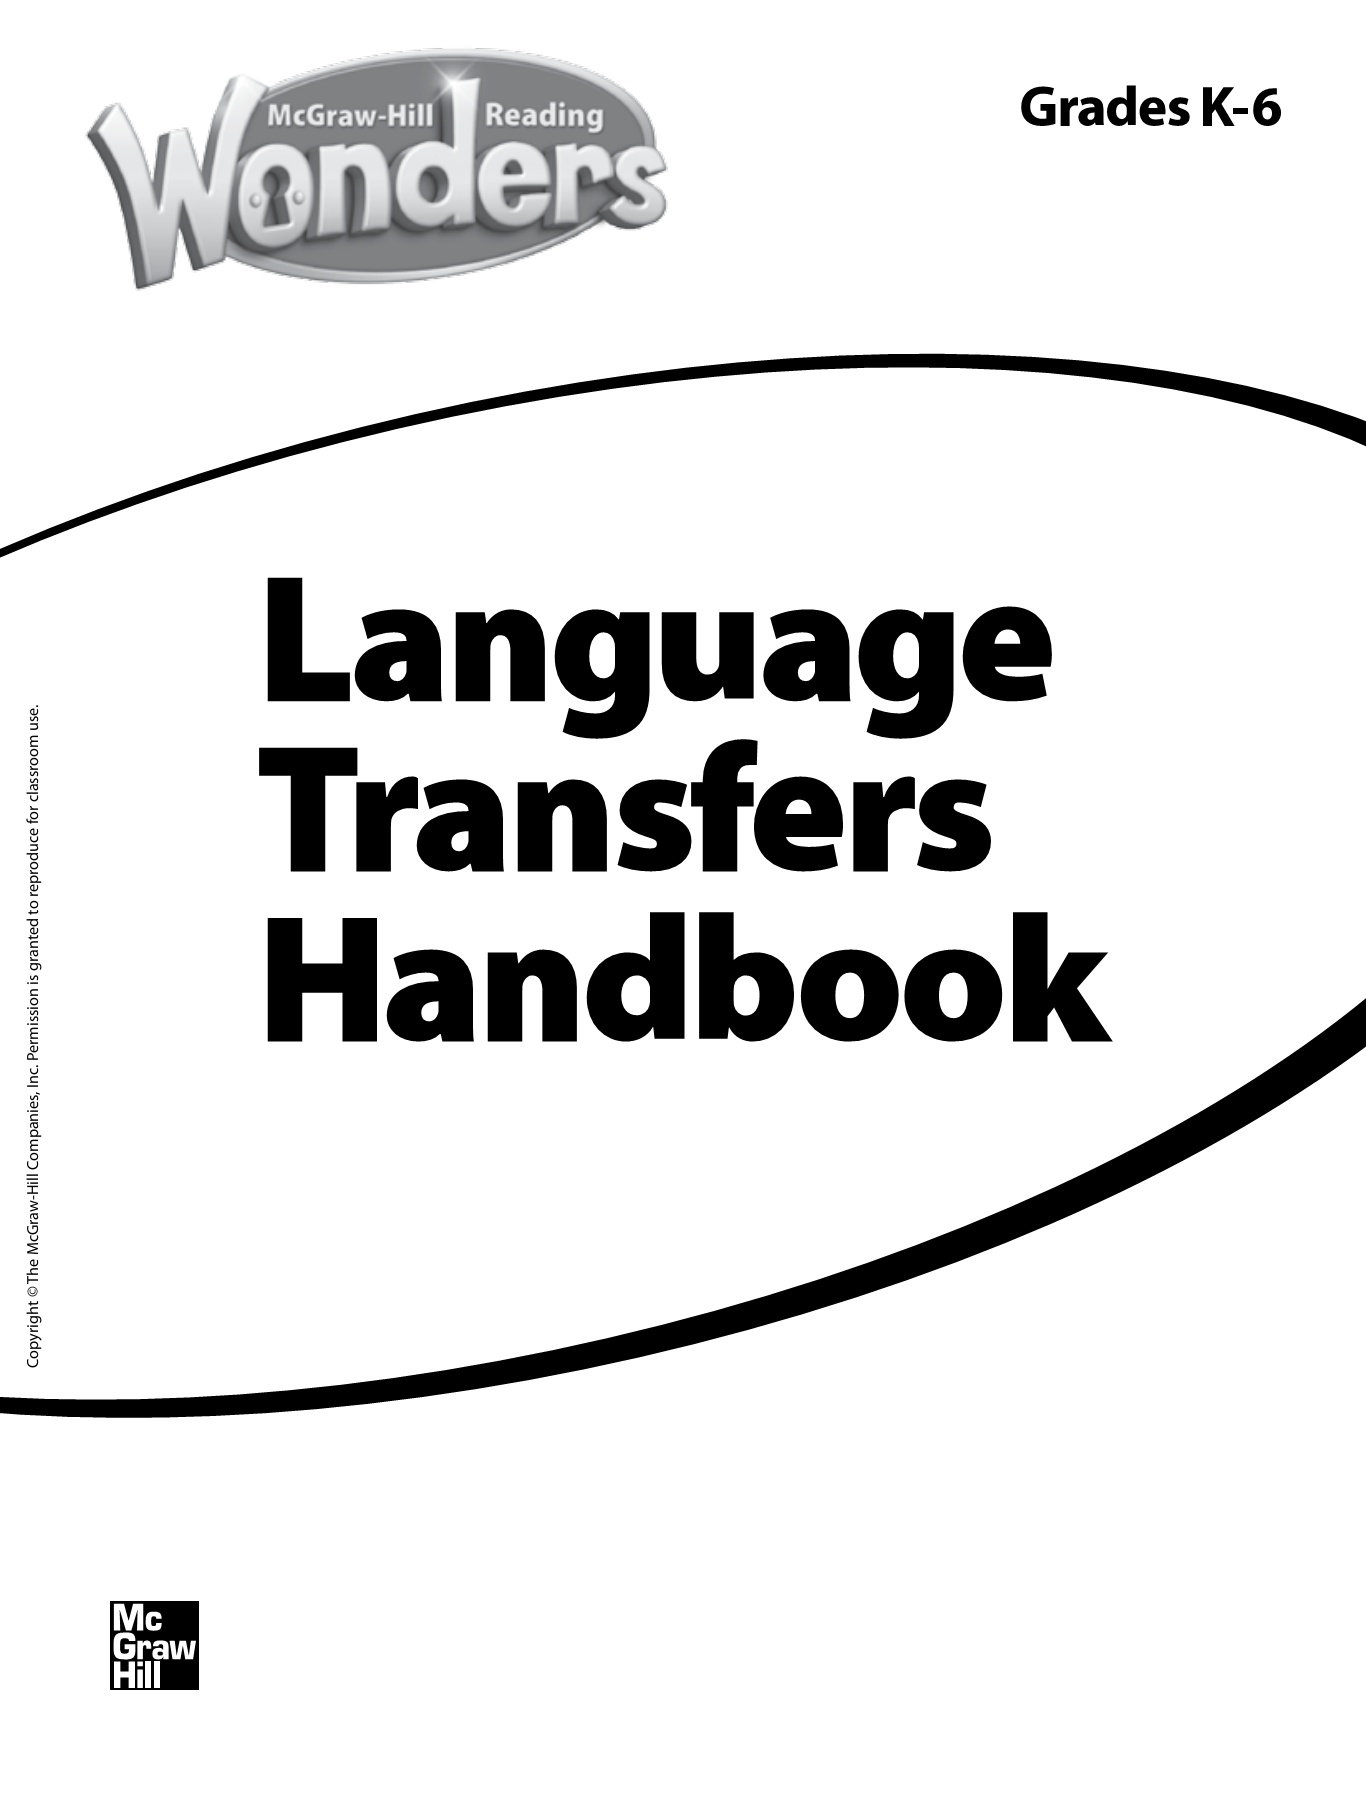 K 6 Language Transfers Handbook Pages 1 16 Text Version